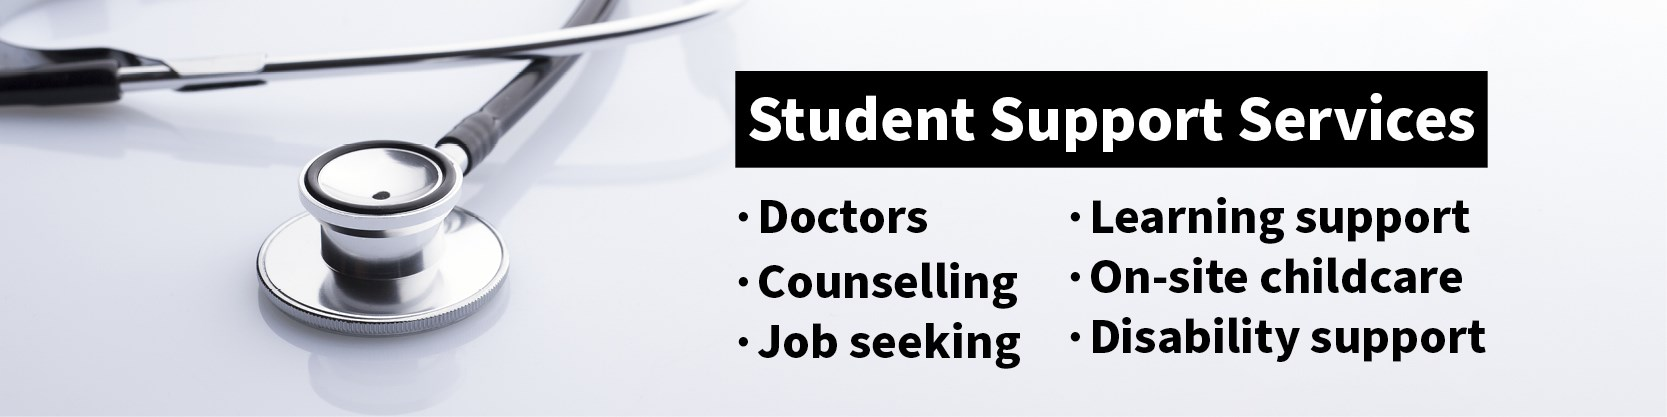 Student Support Services web banner